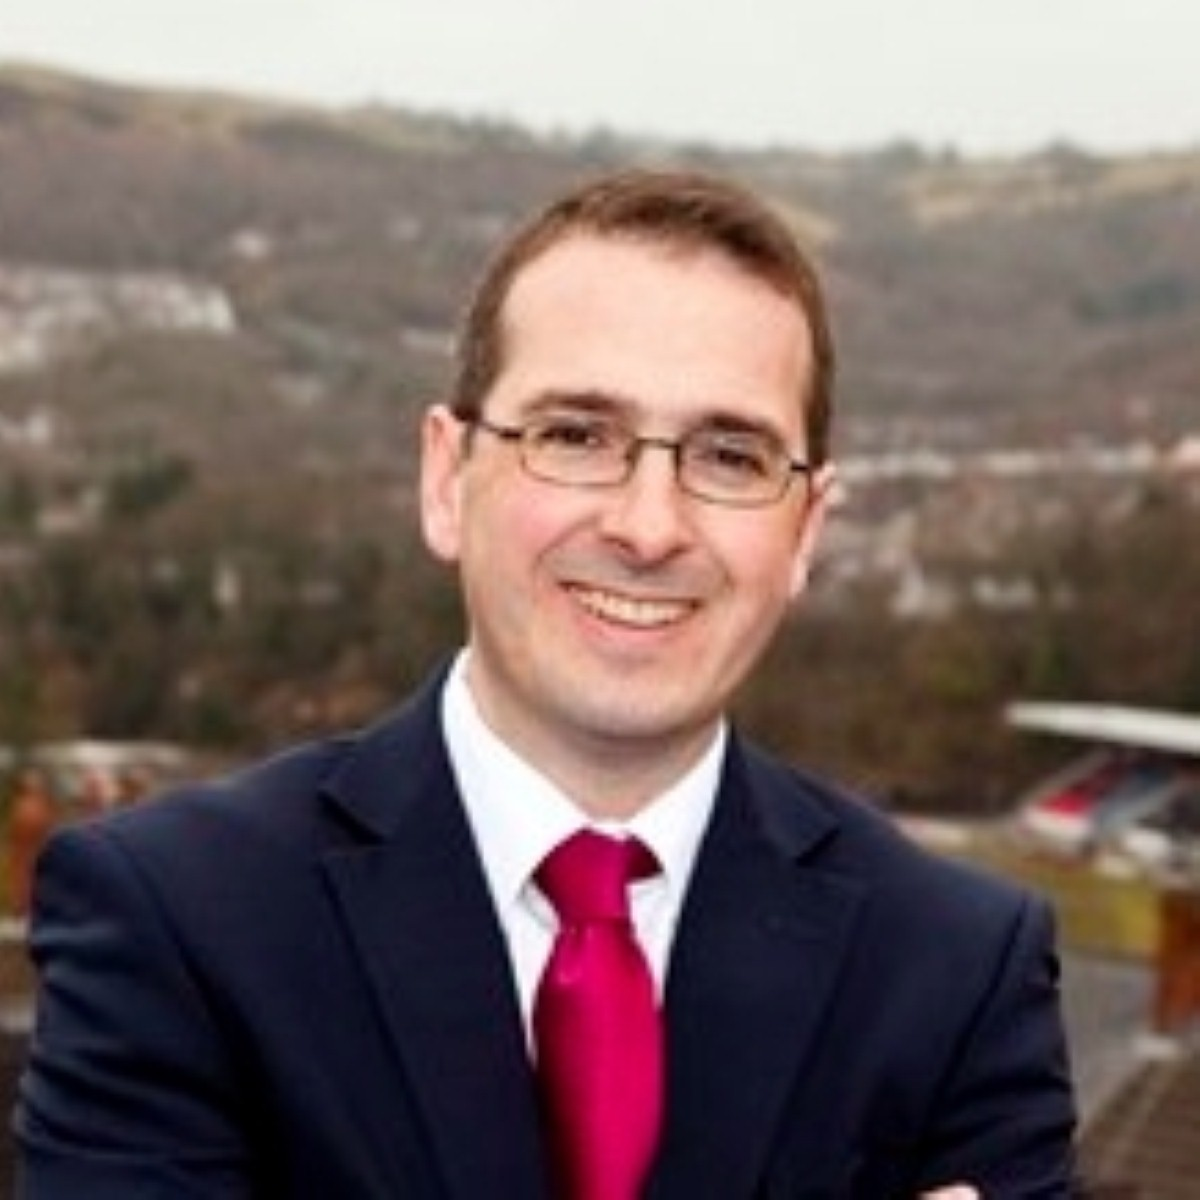 Smith is MP for Pontypridd